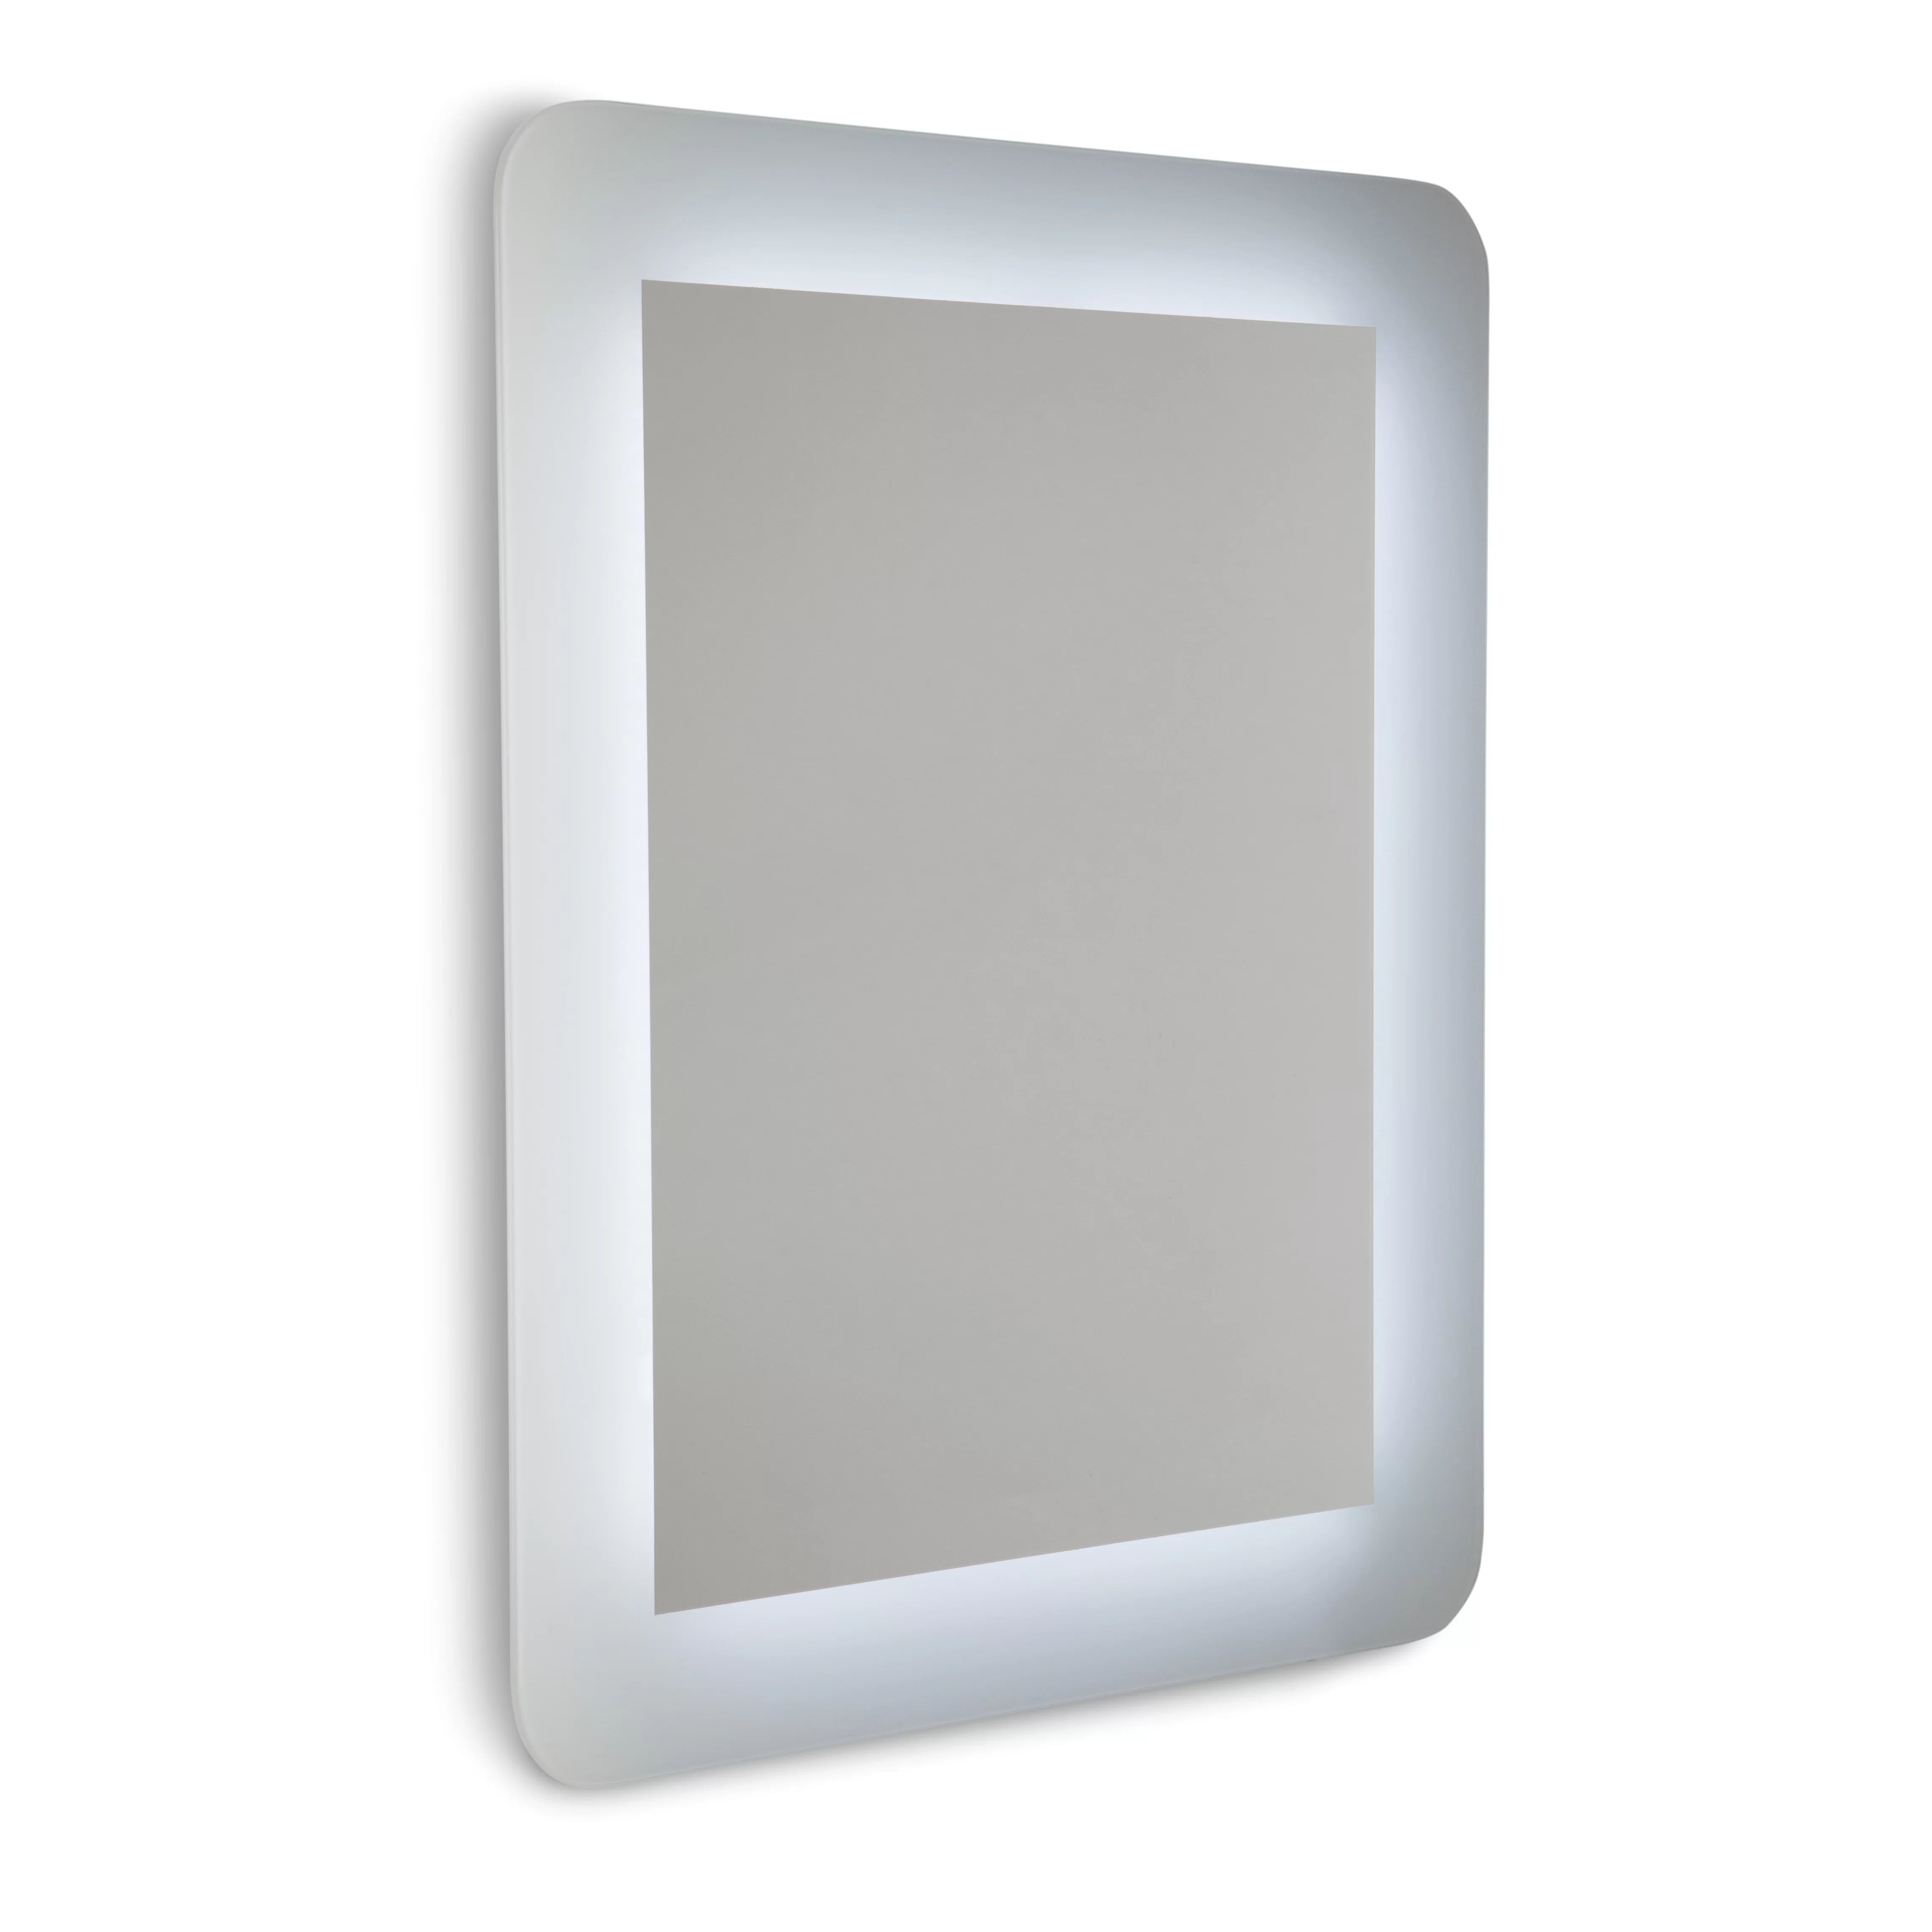 Lighted vanity mirror make up wall mounted led bath mirror mam94331 - Lighted Vanity Mirror Make Up Wall Mounted Led Bath Mirror Mam94331 Speci Wall Mounted Bathroom Download